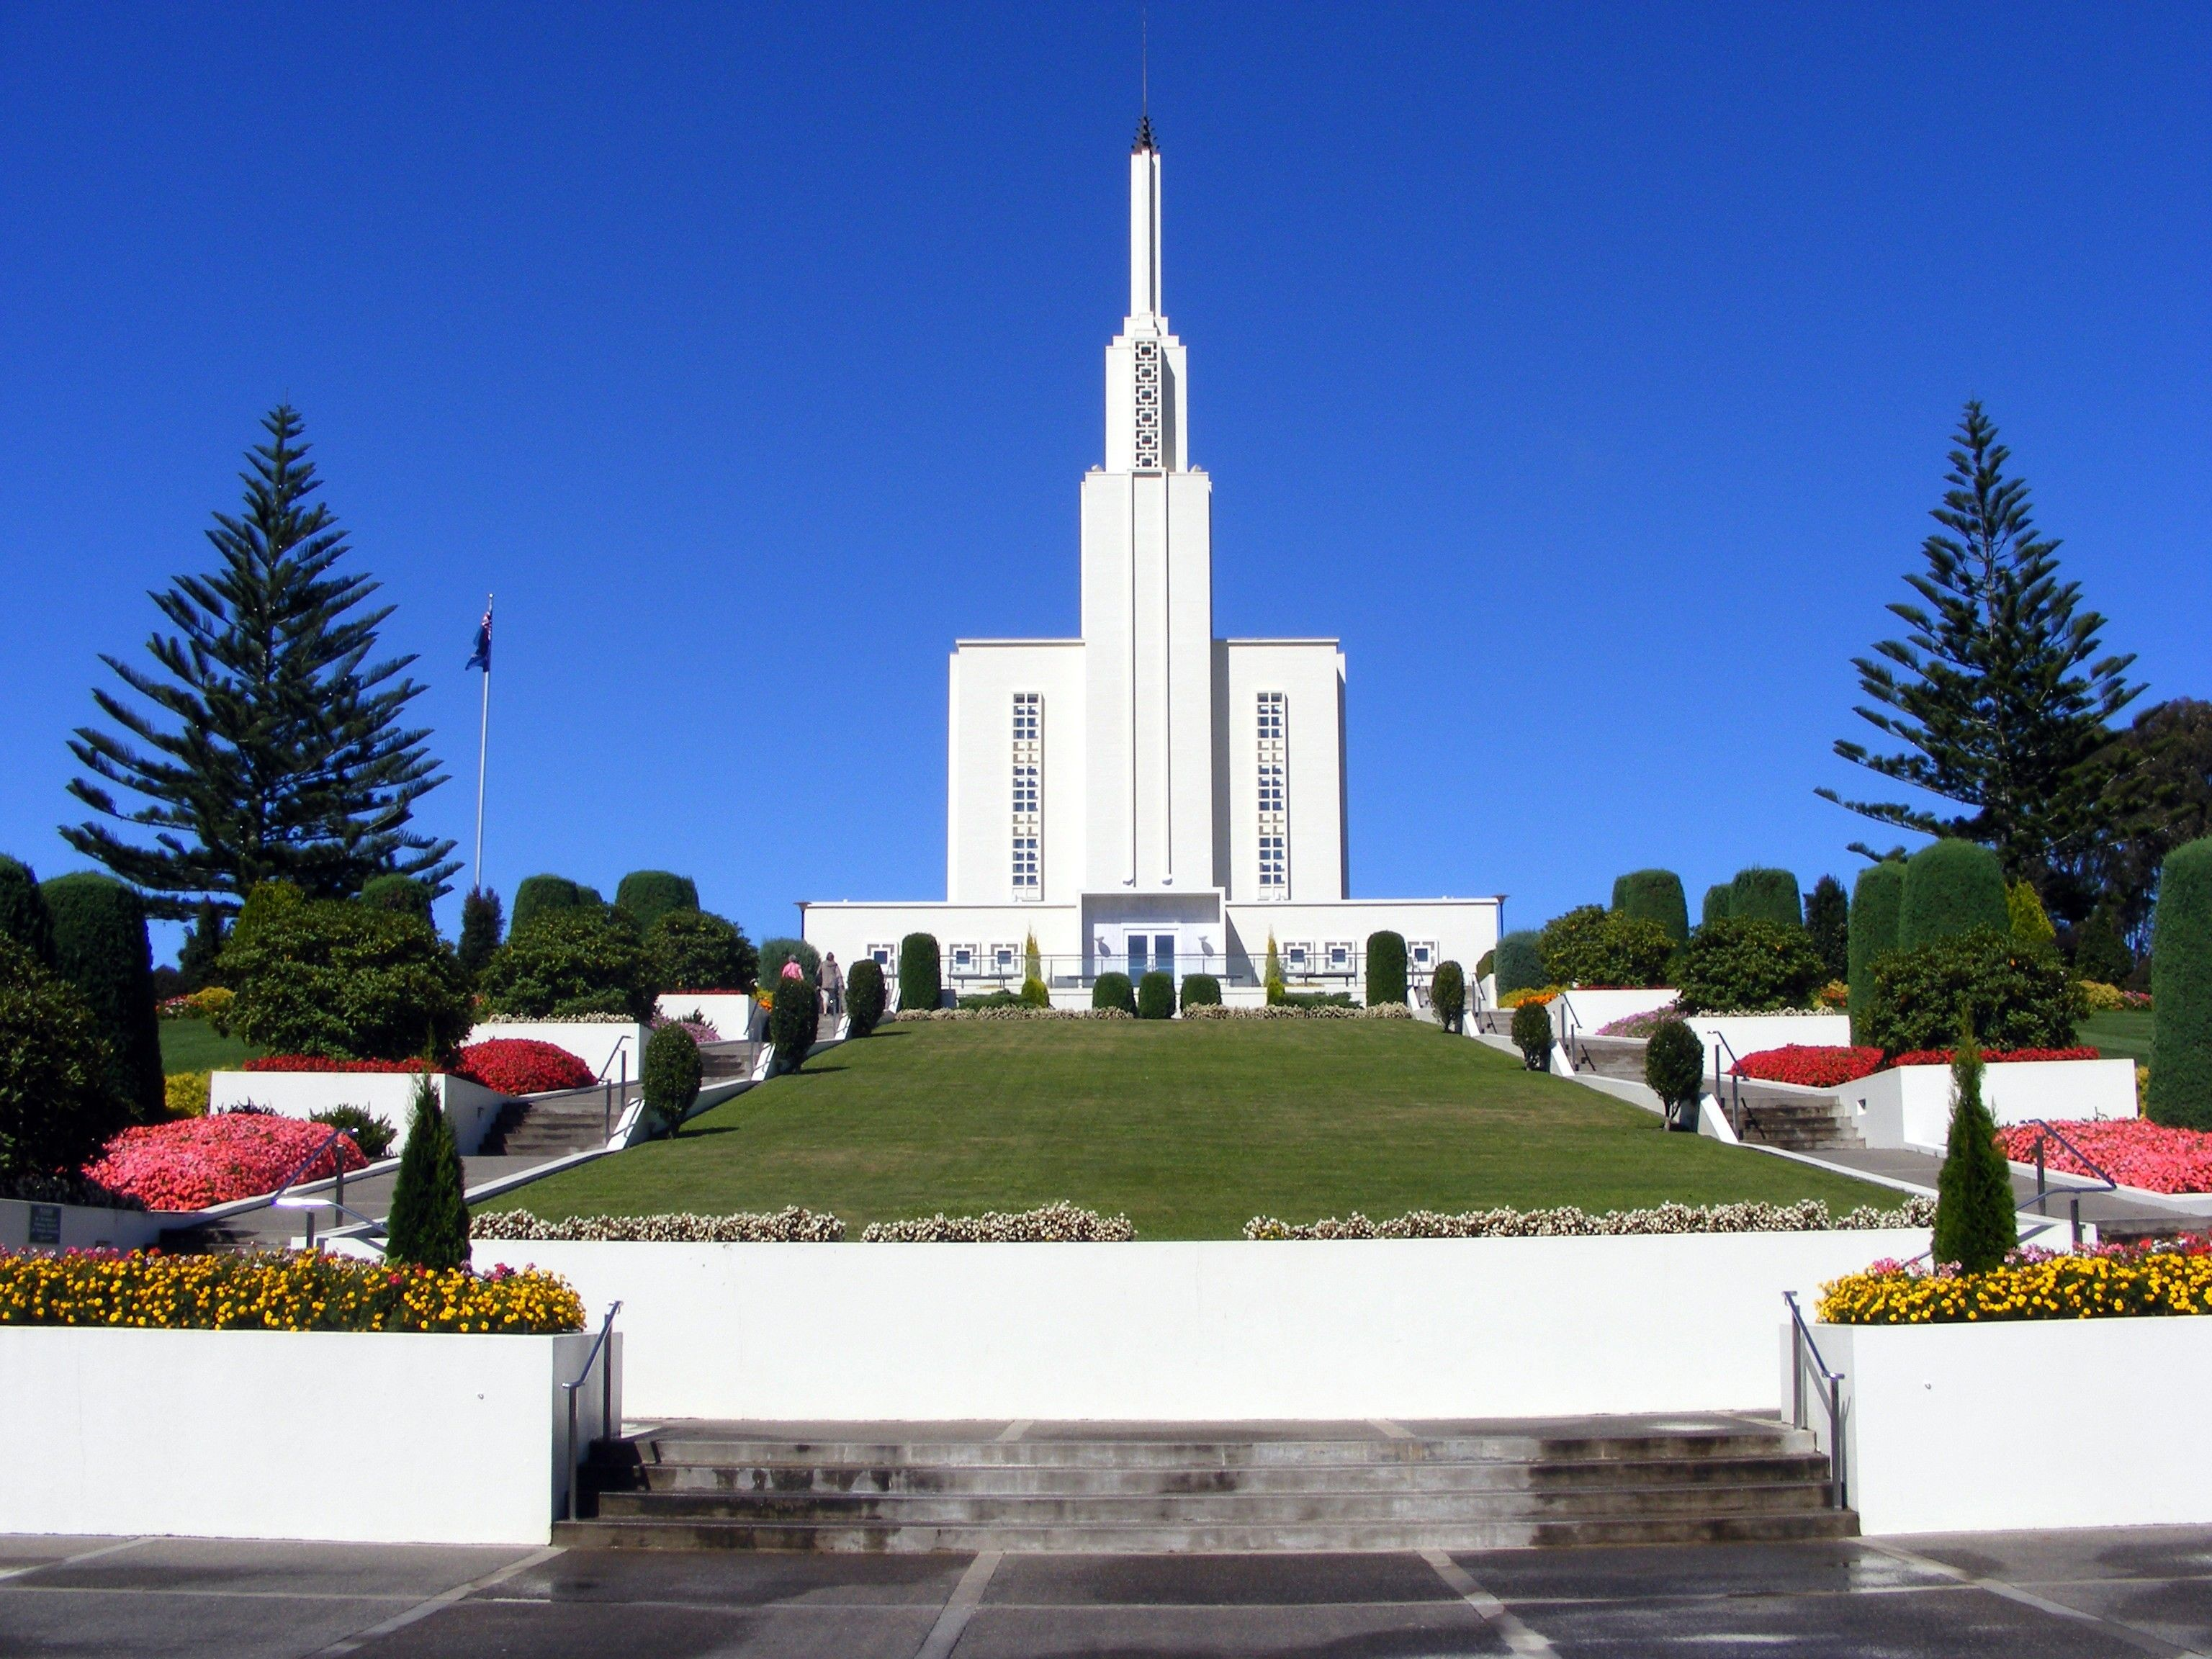 An exterior view of the entrance to the Hamilton New Zealand Temple.